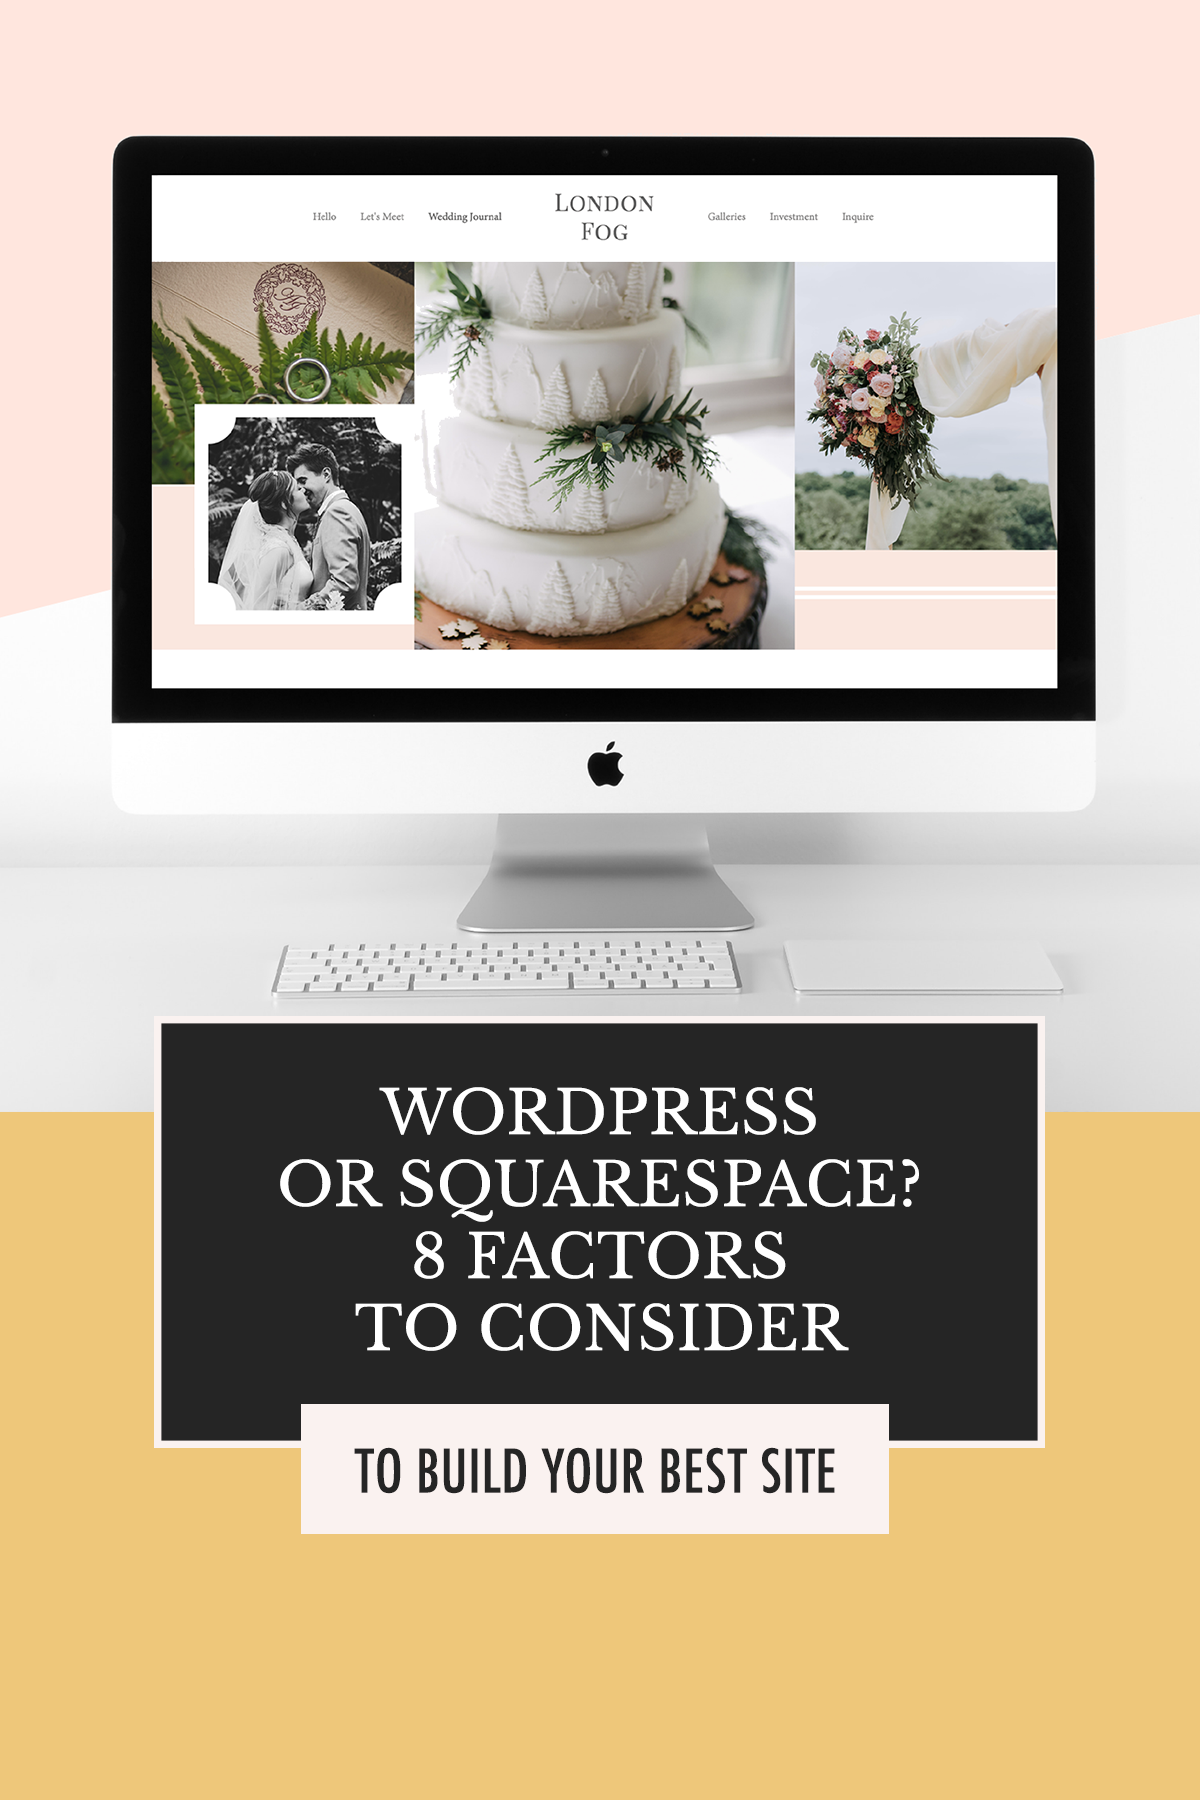 WordPress or Squarespace? | A little help from Alexis the Greek